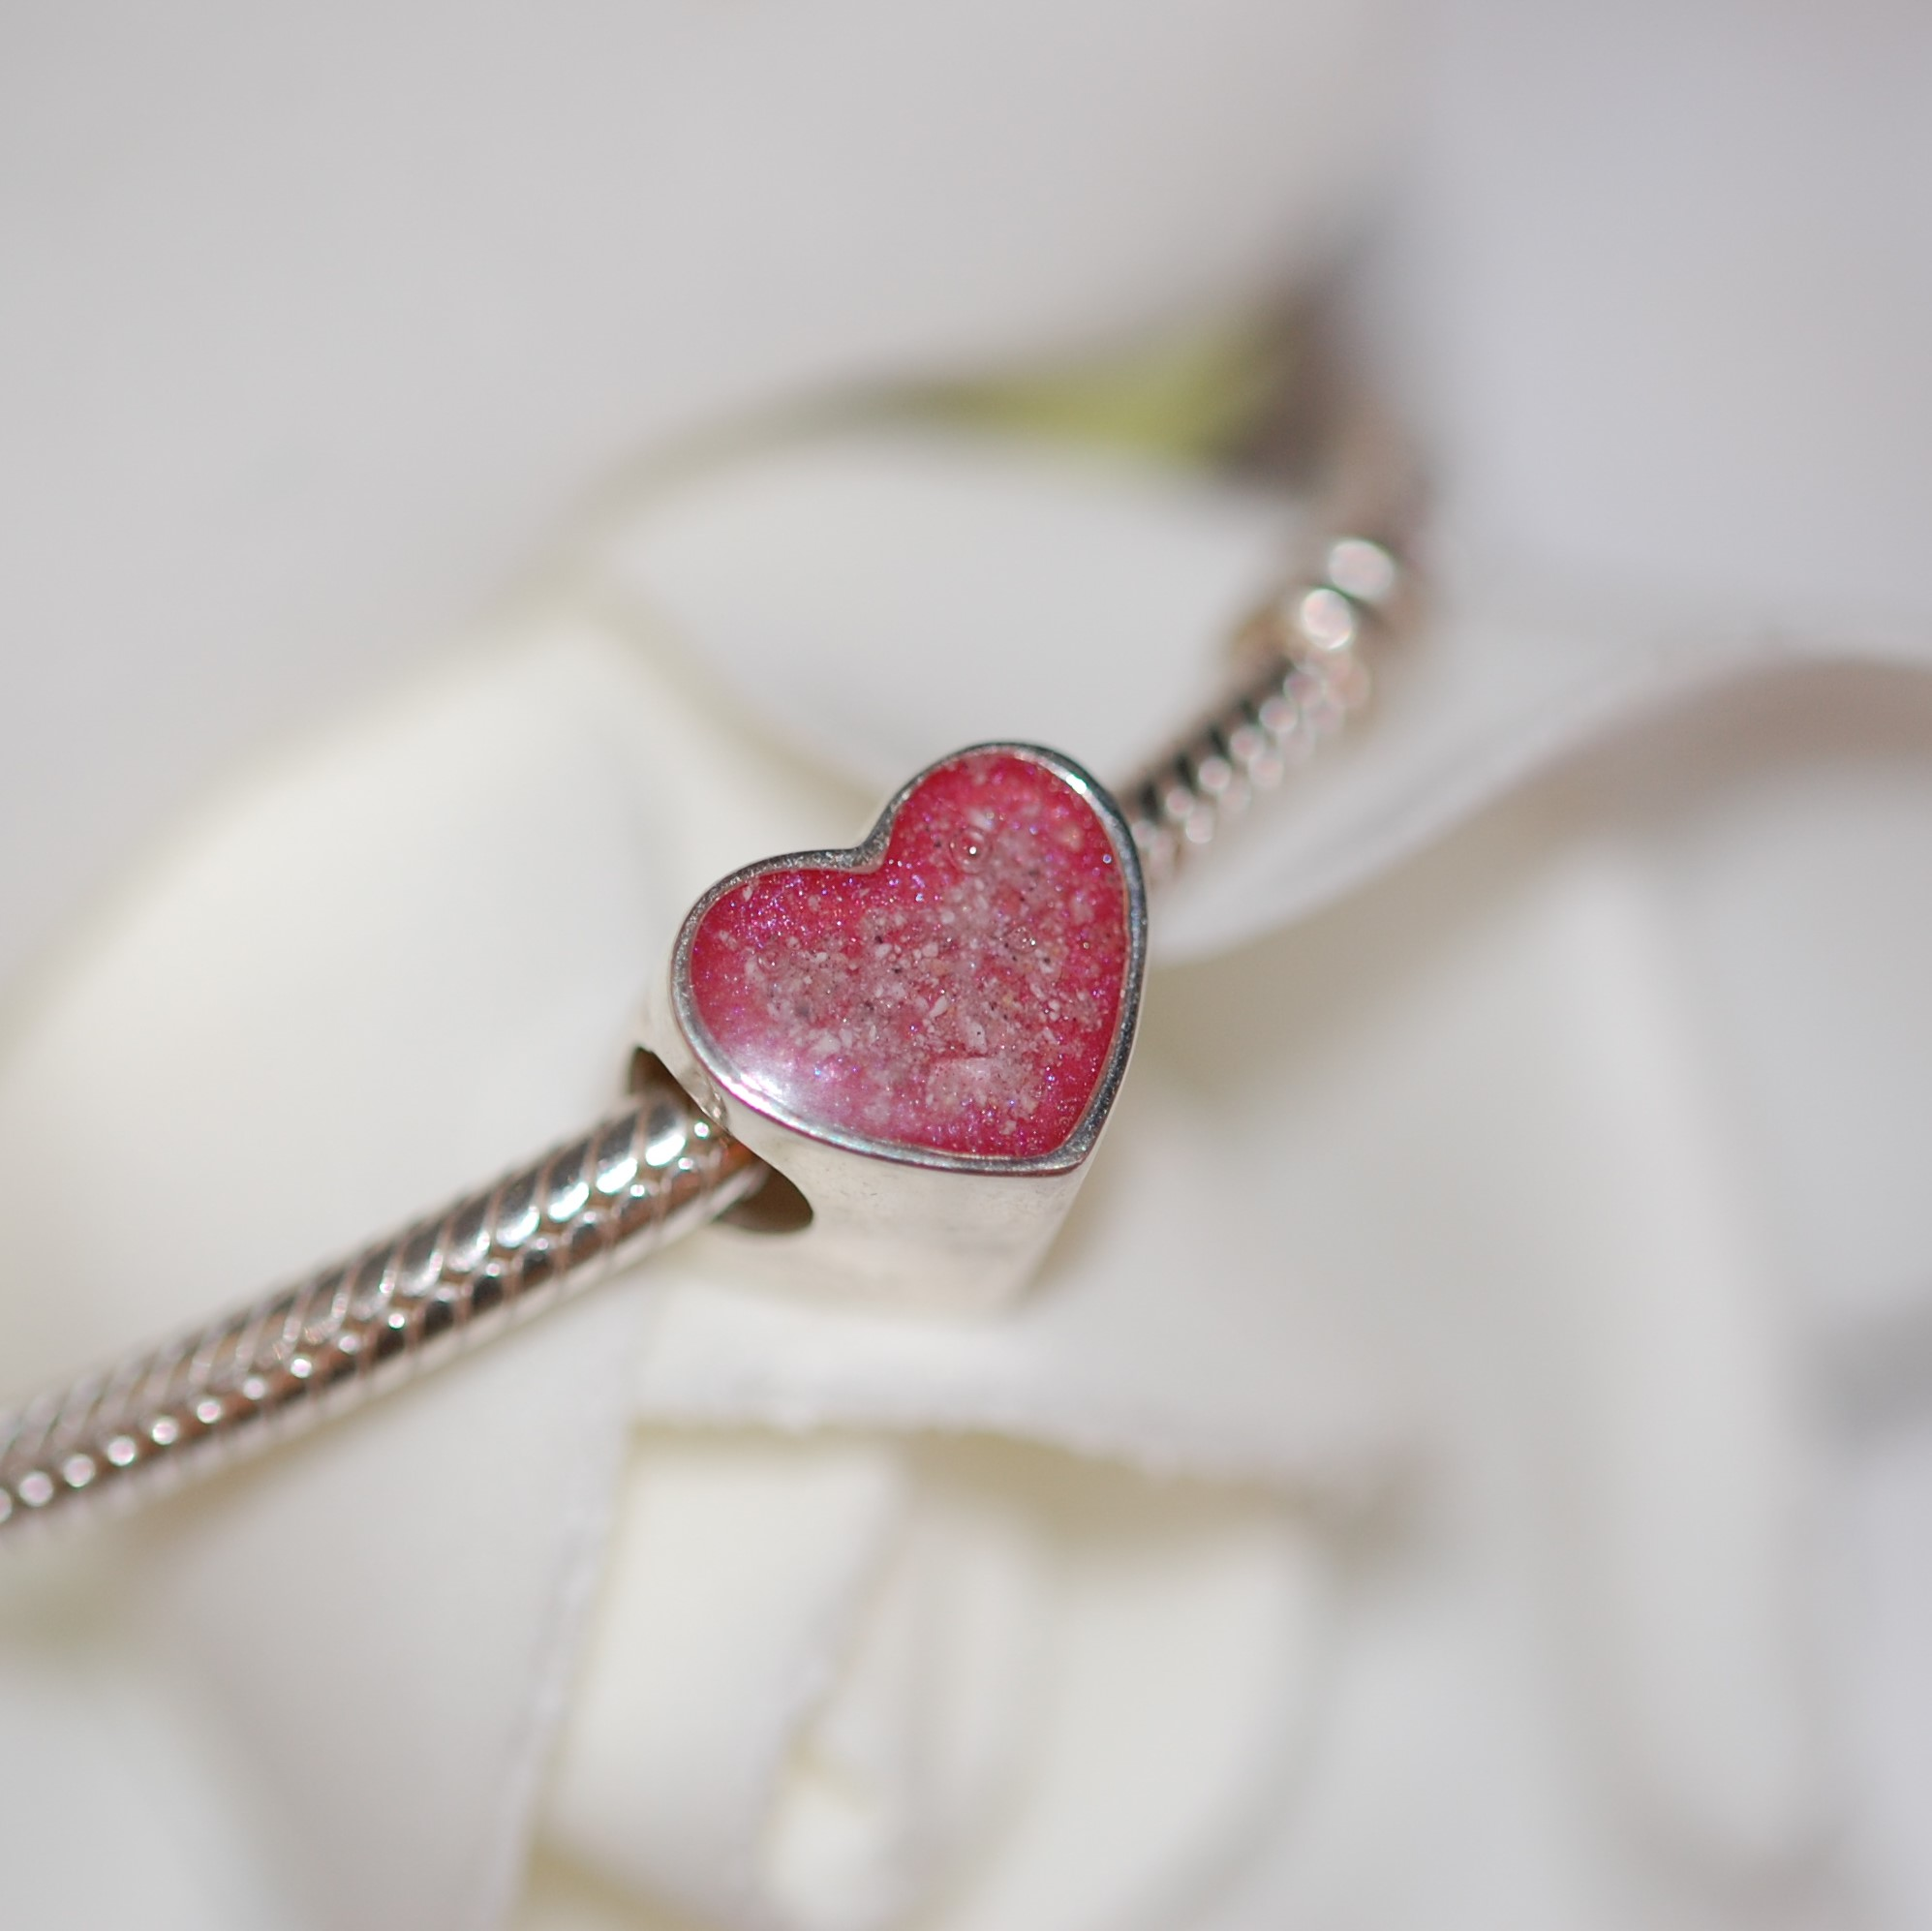 Sterling silver heart charm bead encasing pet cremation ashes in resin